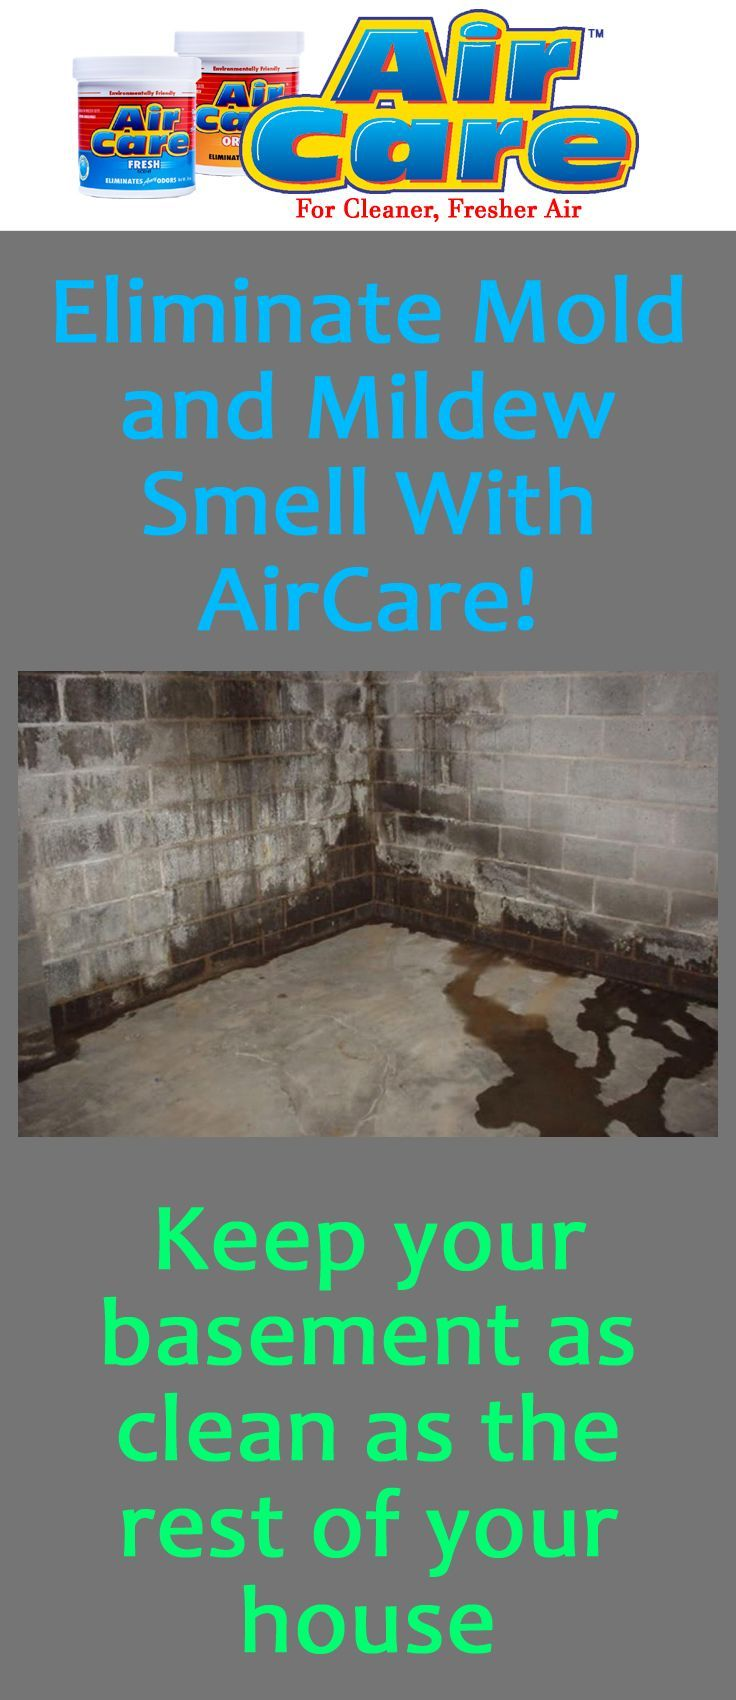 How to get rid of mold and mildew smell in your basement